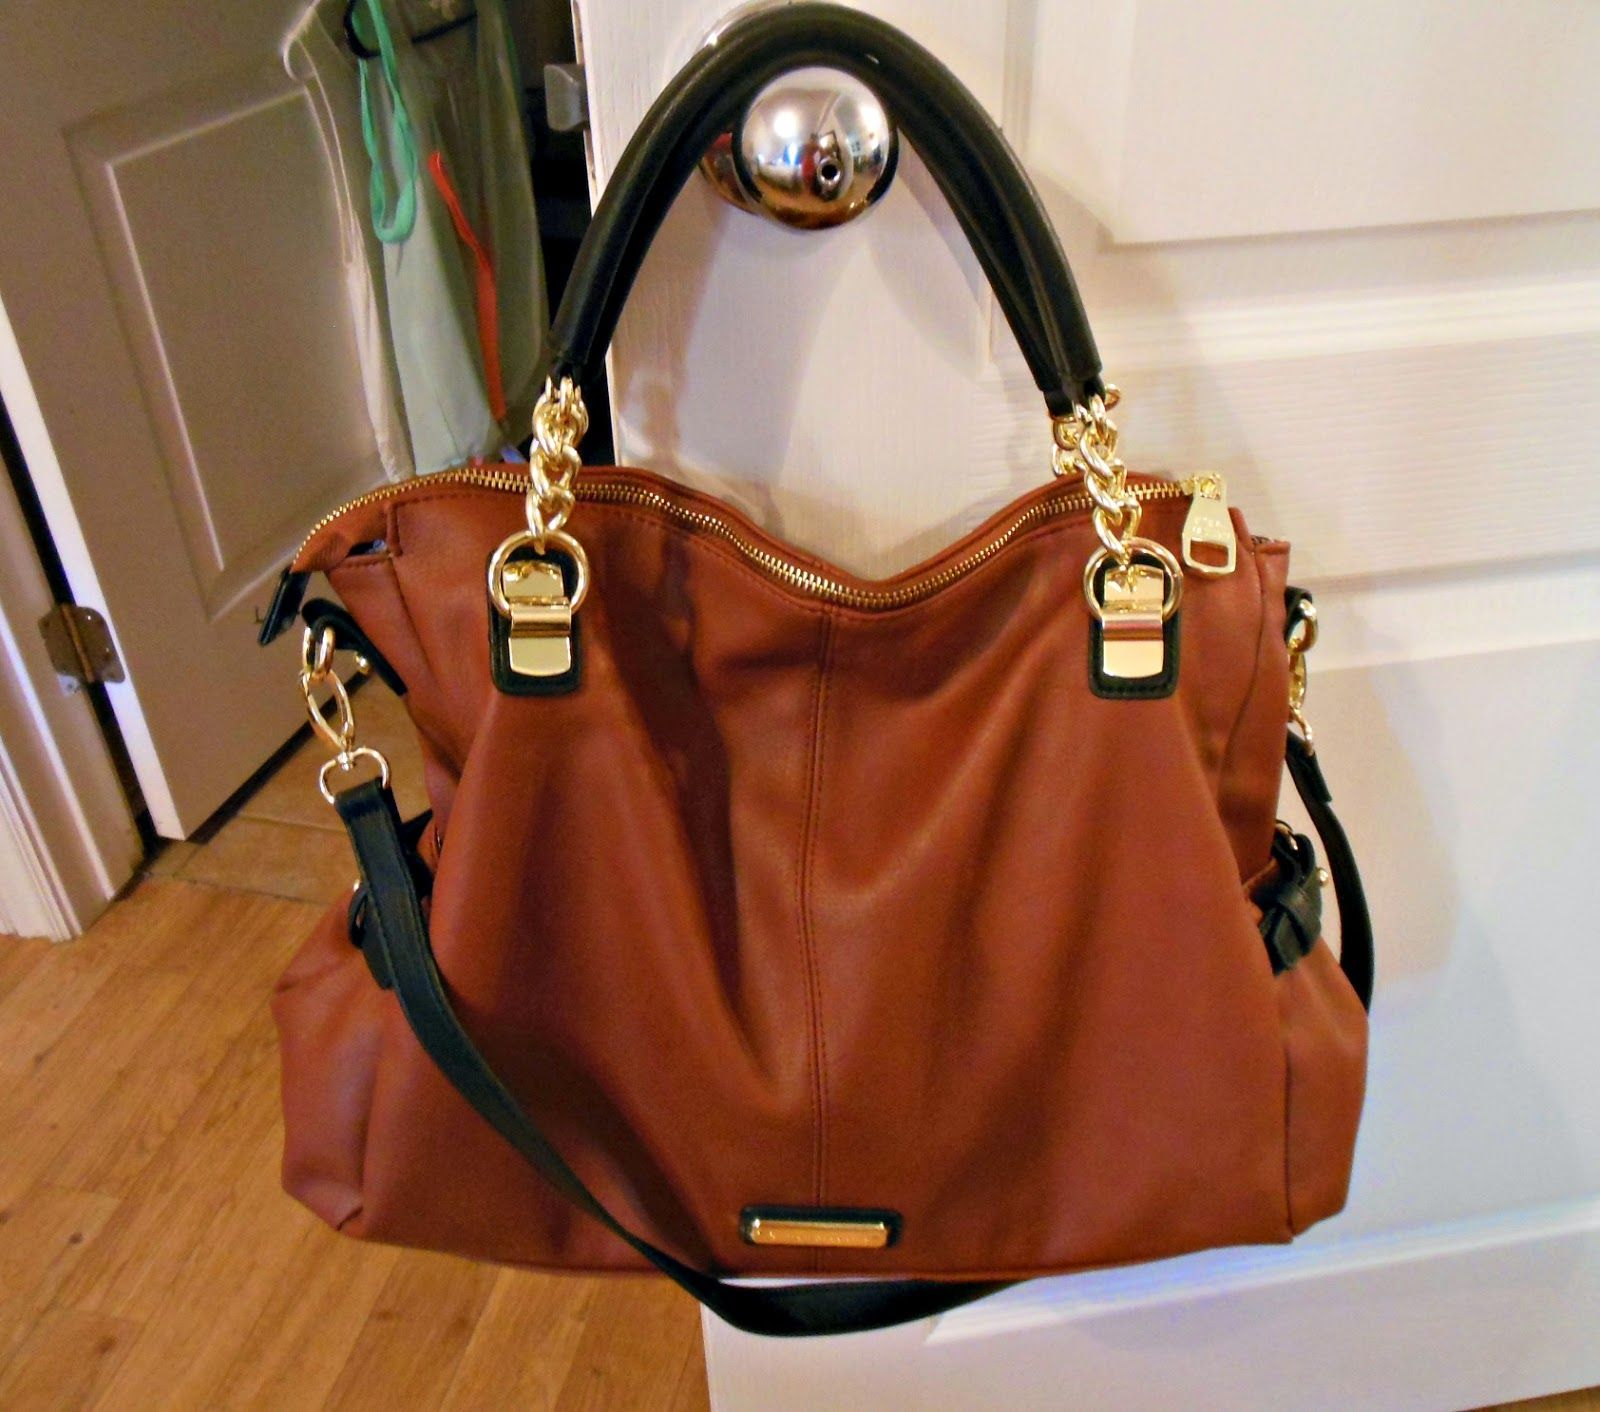 Steve Madden Purse Website Ashleygabrielle